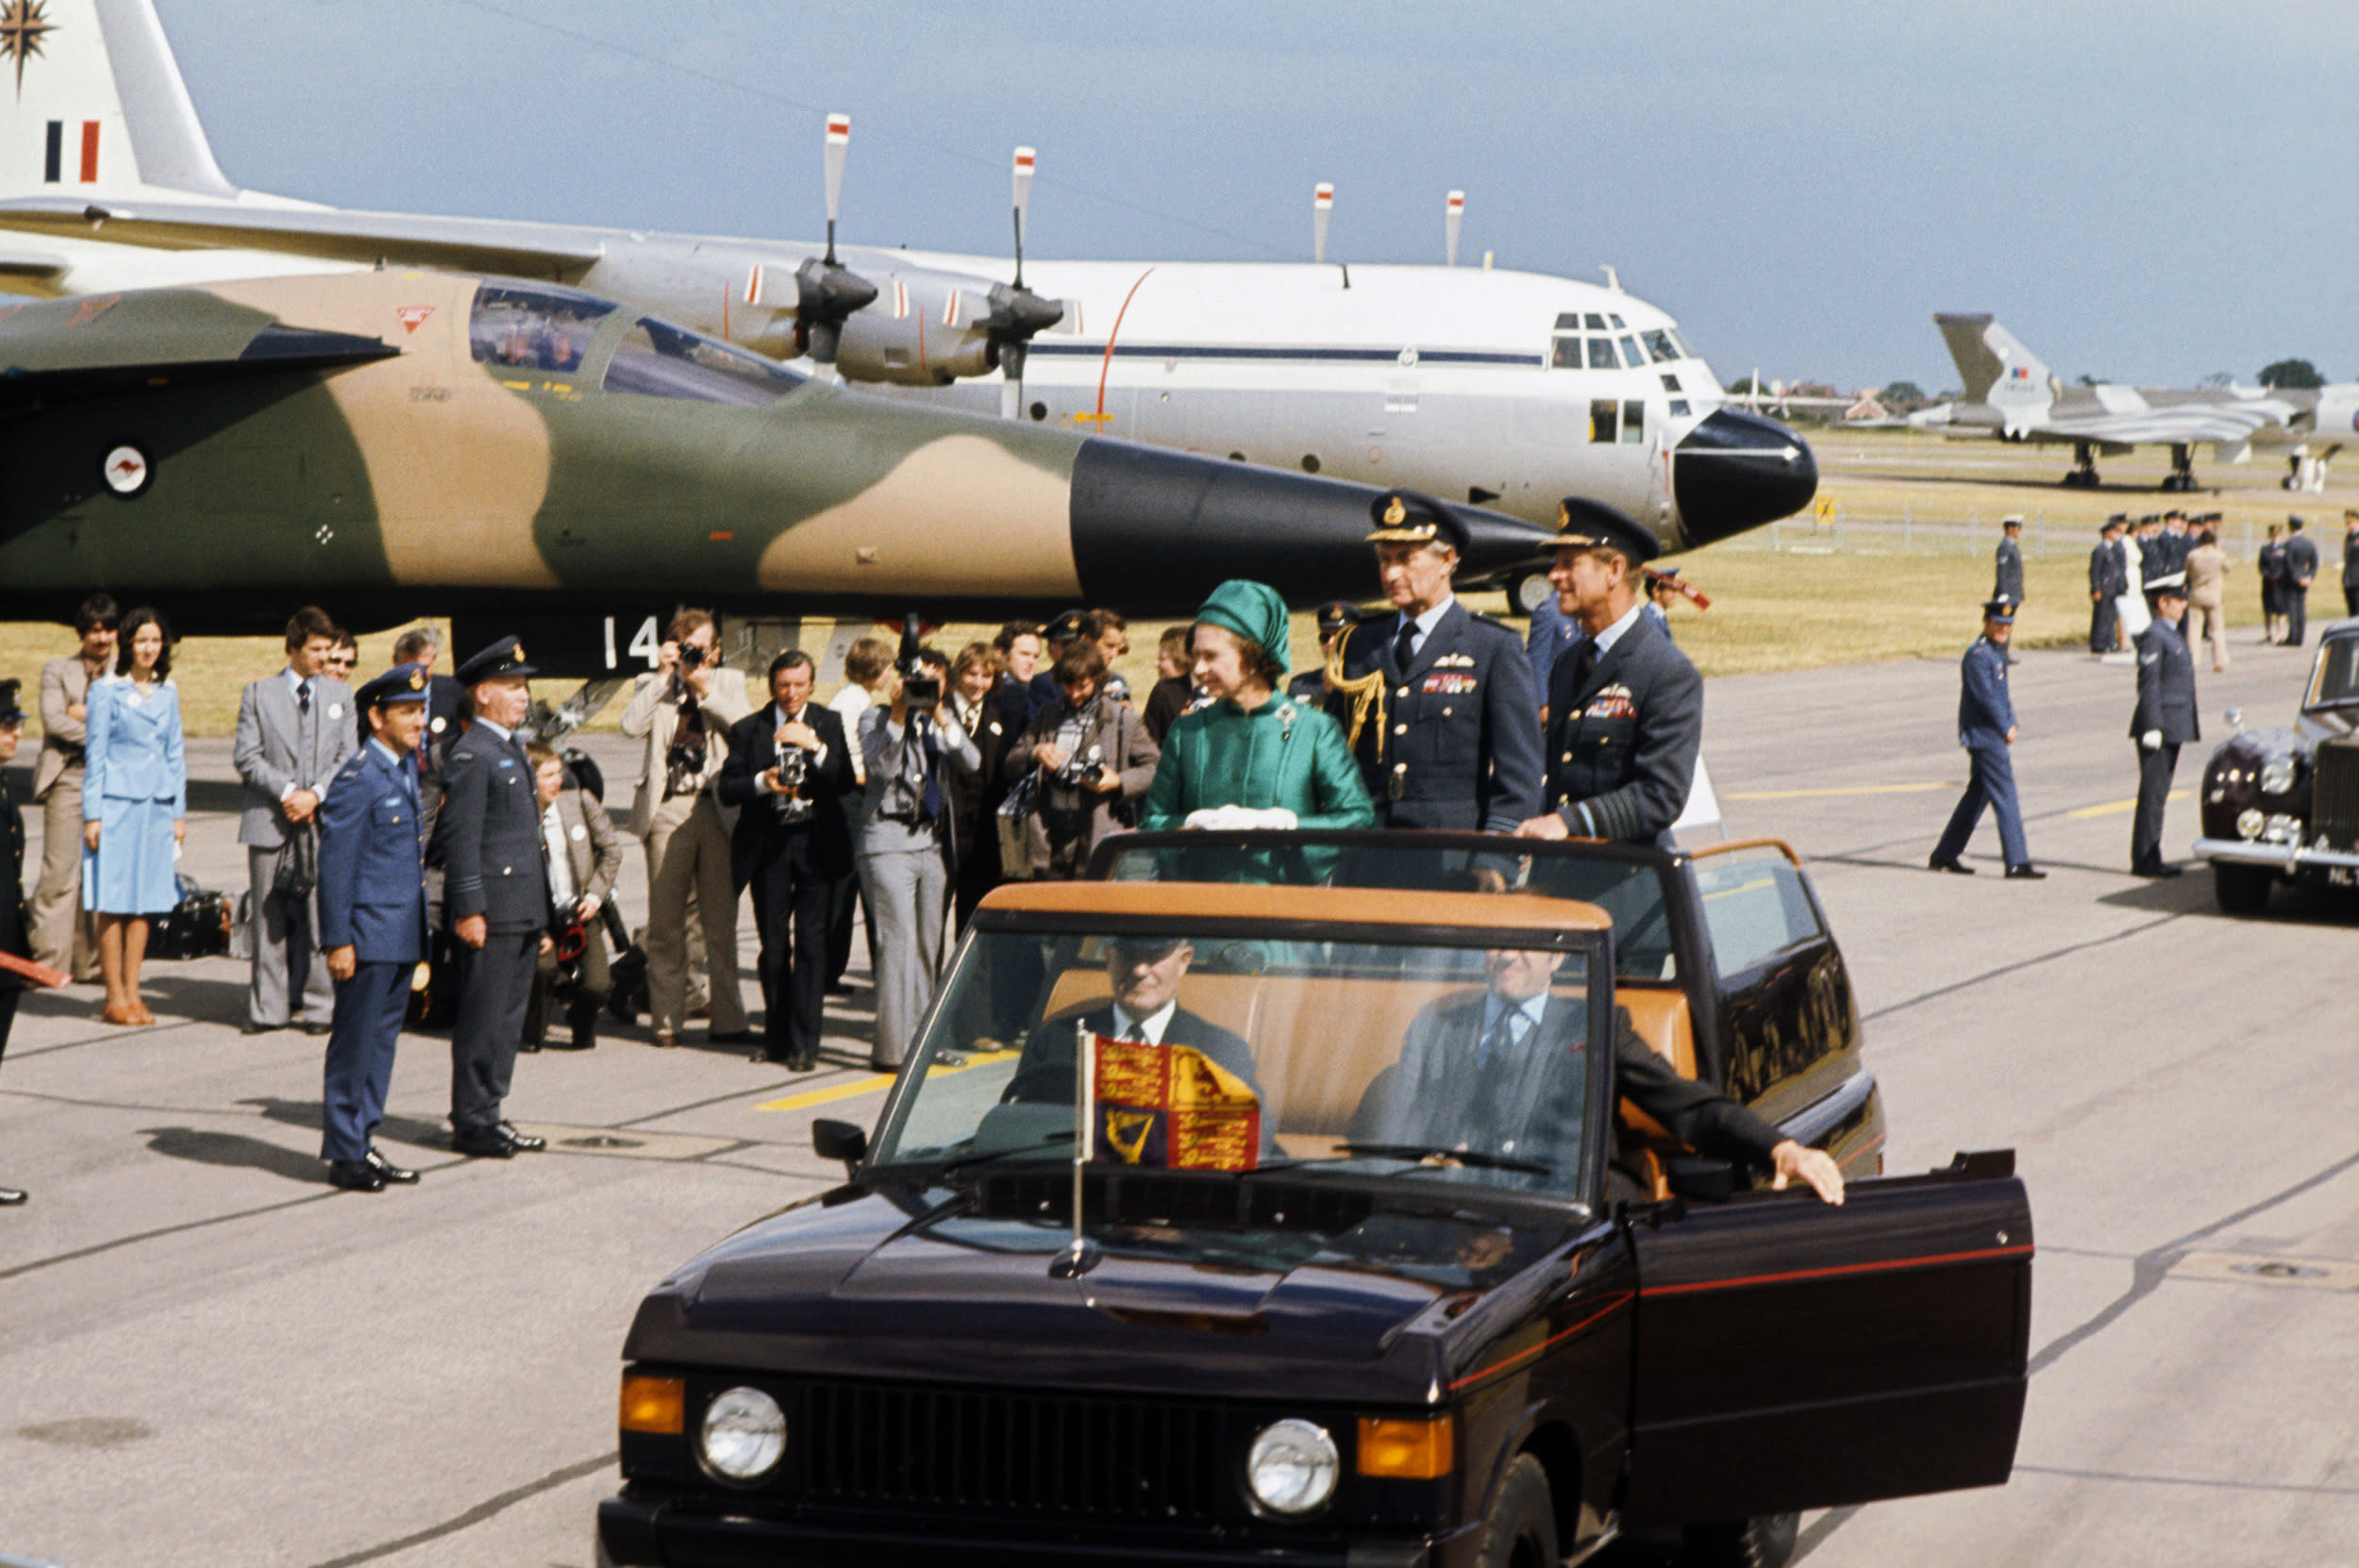 Queen Elizabeth II and the Duke of Edinburgh (in uniform as a Marshal of the RAF) driving in an open field car along the lines of aircraft and crews at the Royal Review of the Royal Air Force, at RAF Finningley, during her Silver Jubilee tour of Great Britain